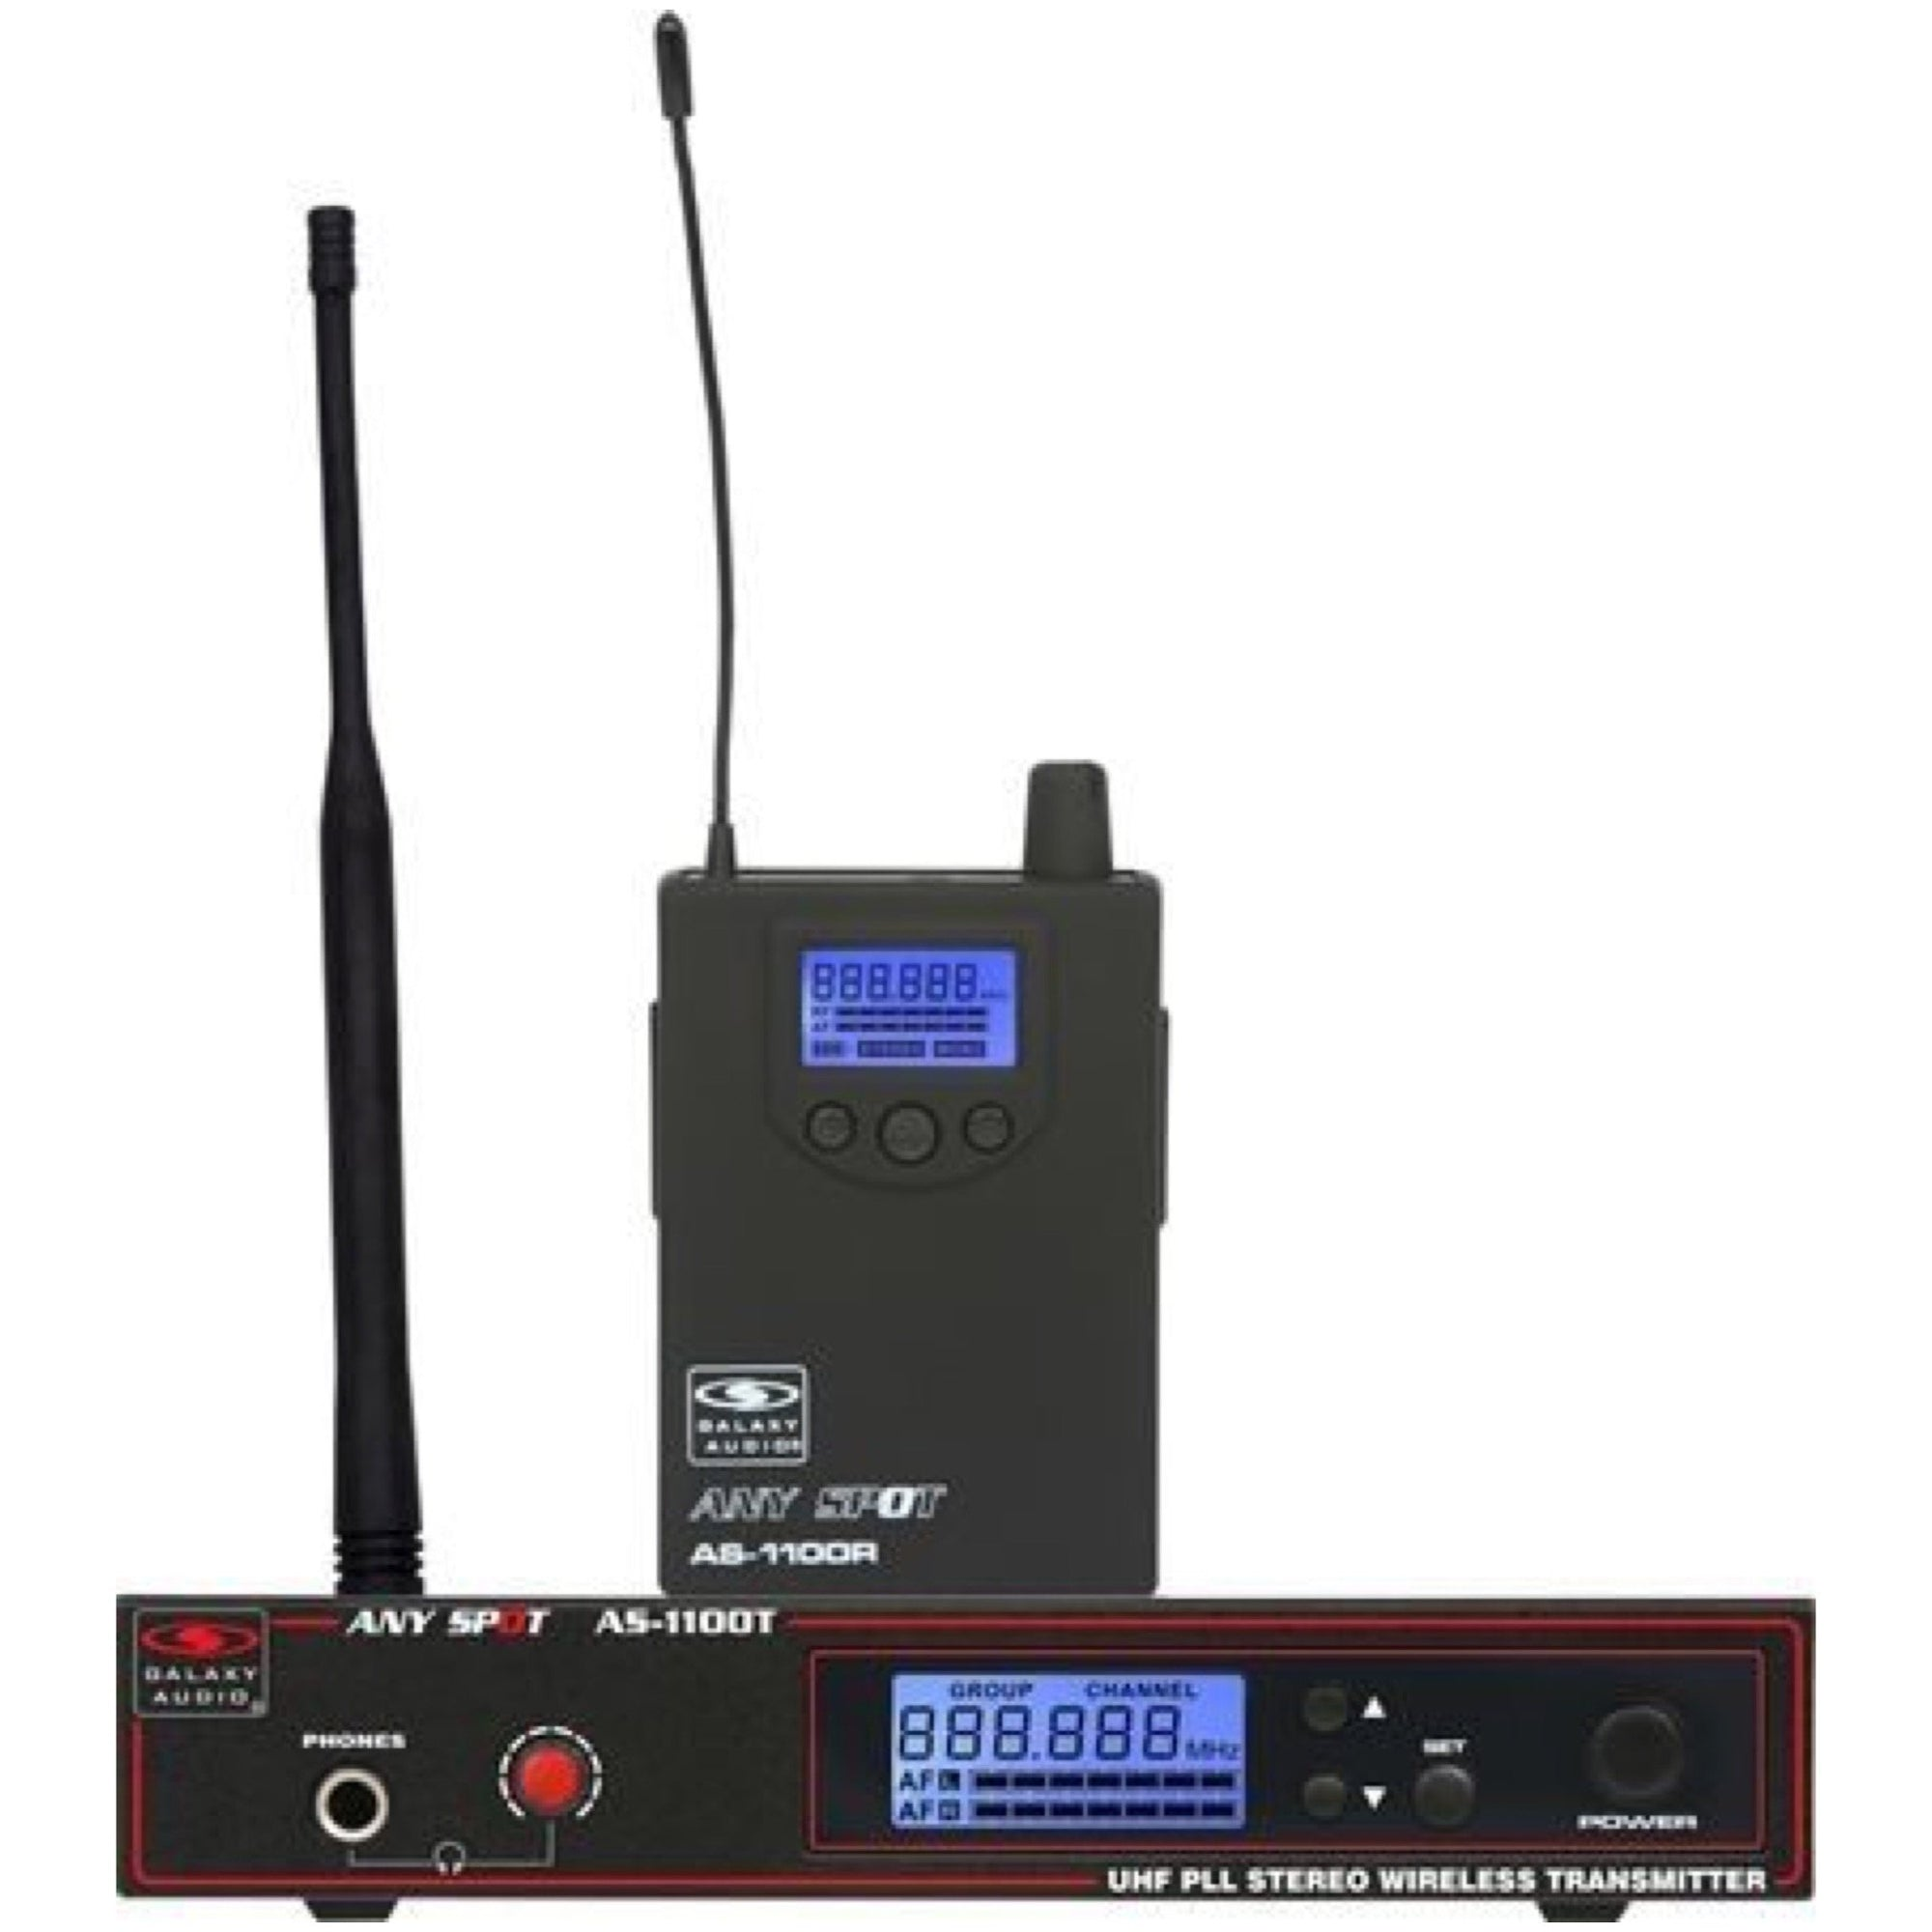 Galaxy Audio AS-1100 Selectable-Frequency Wireless In-Ear Monitor Personal System, Band N (518-542 MHz)